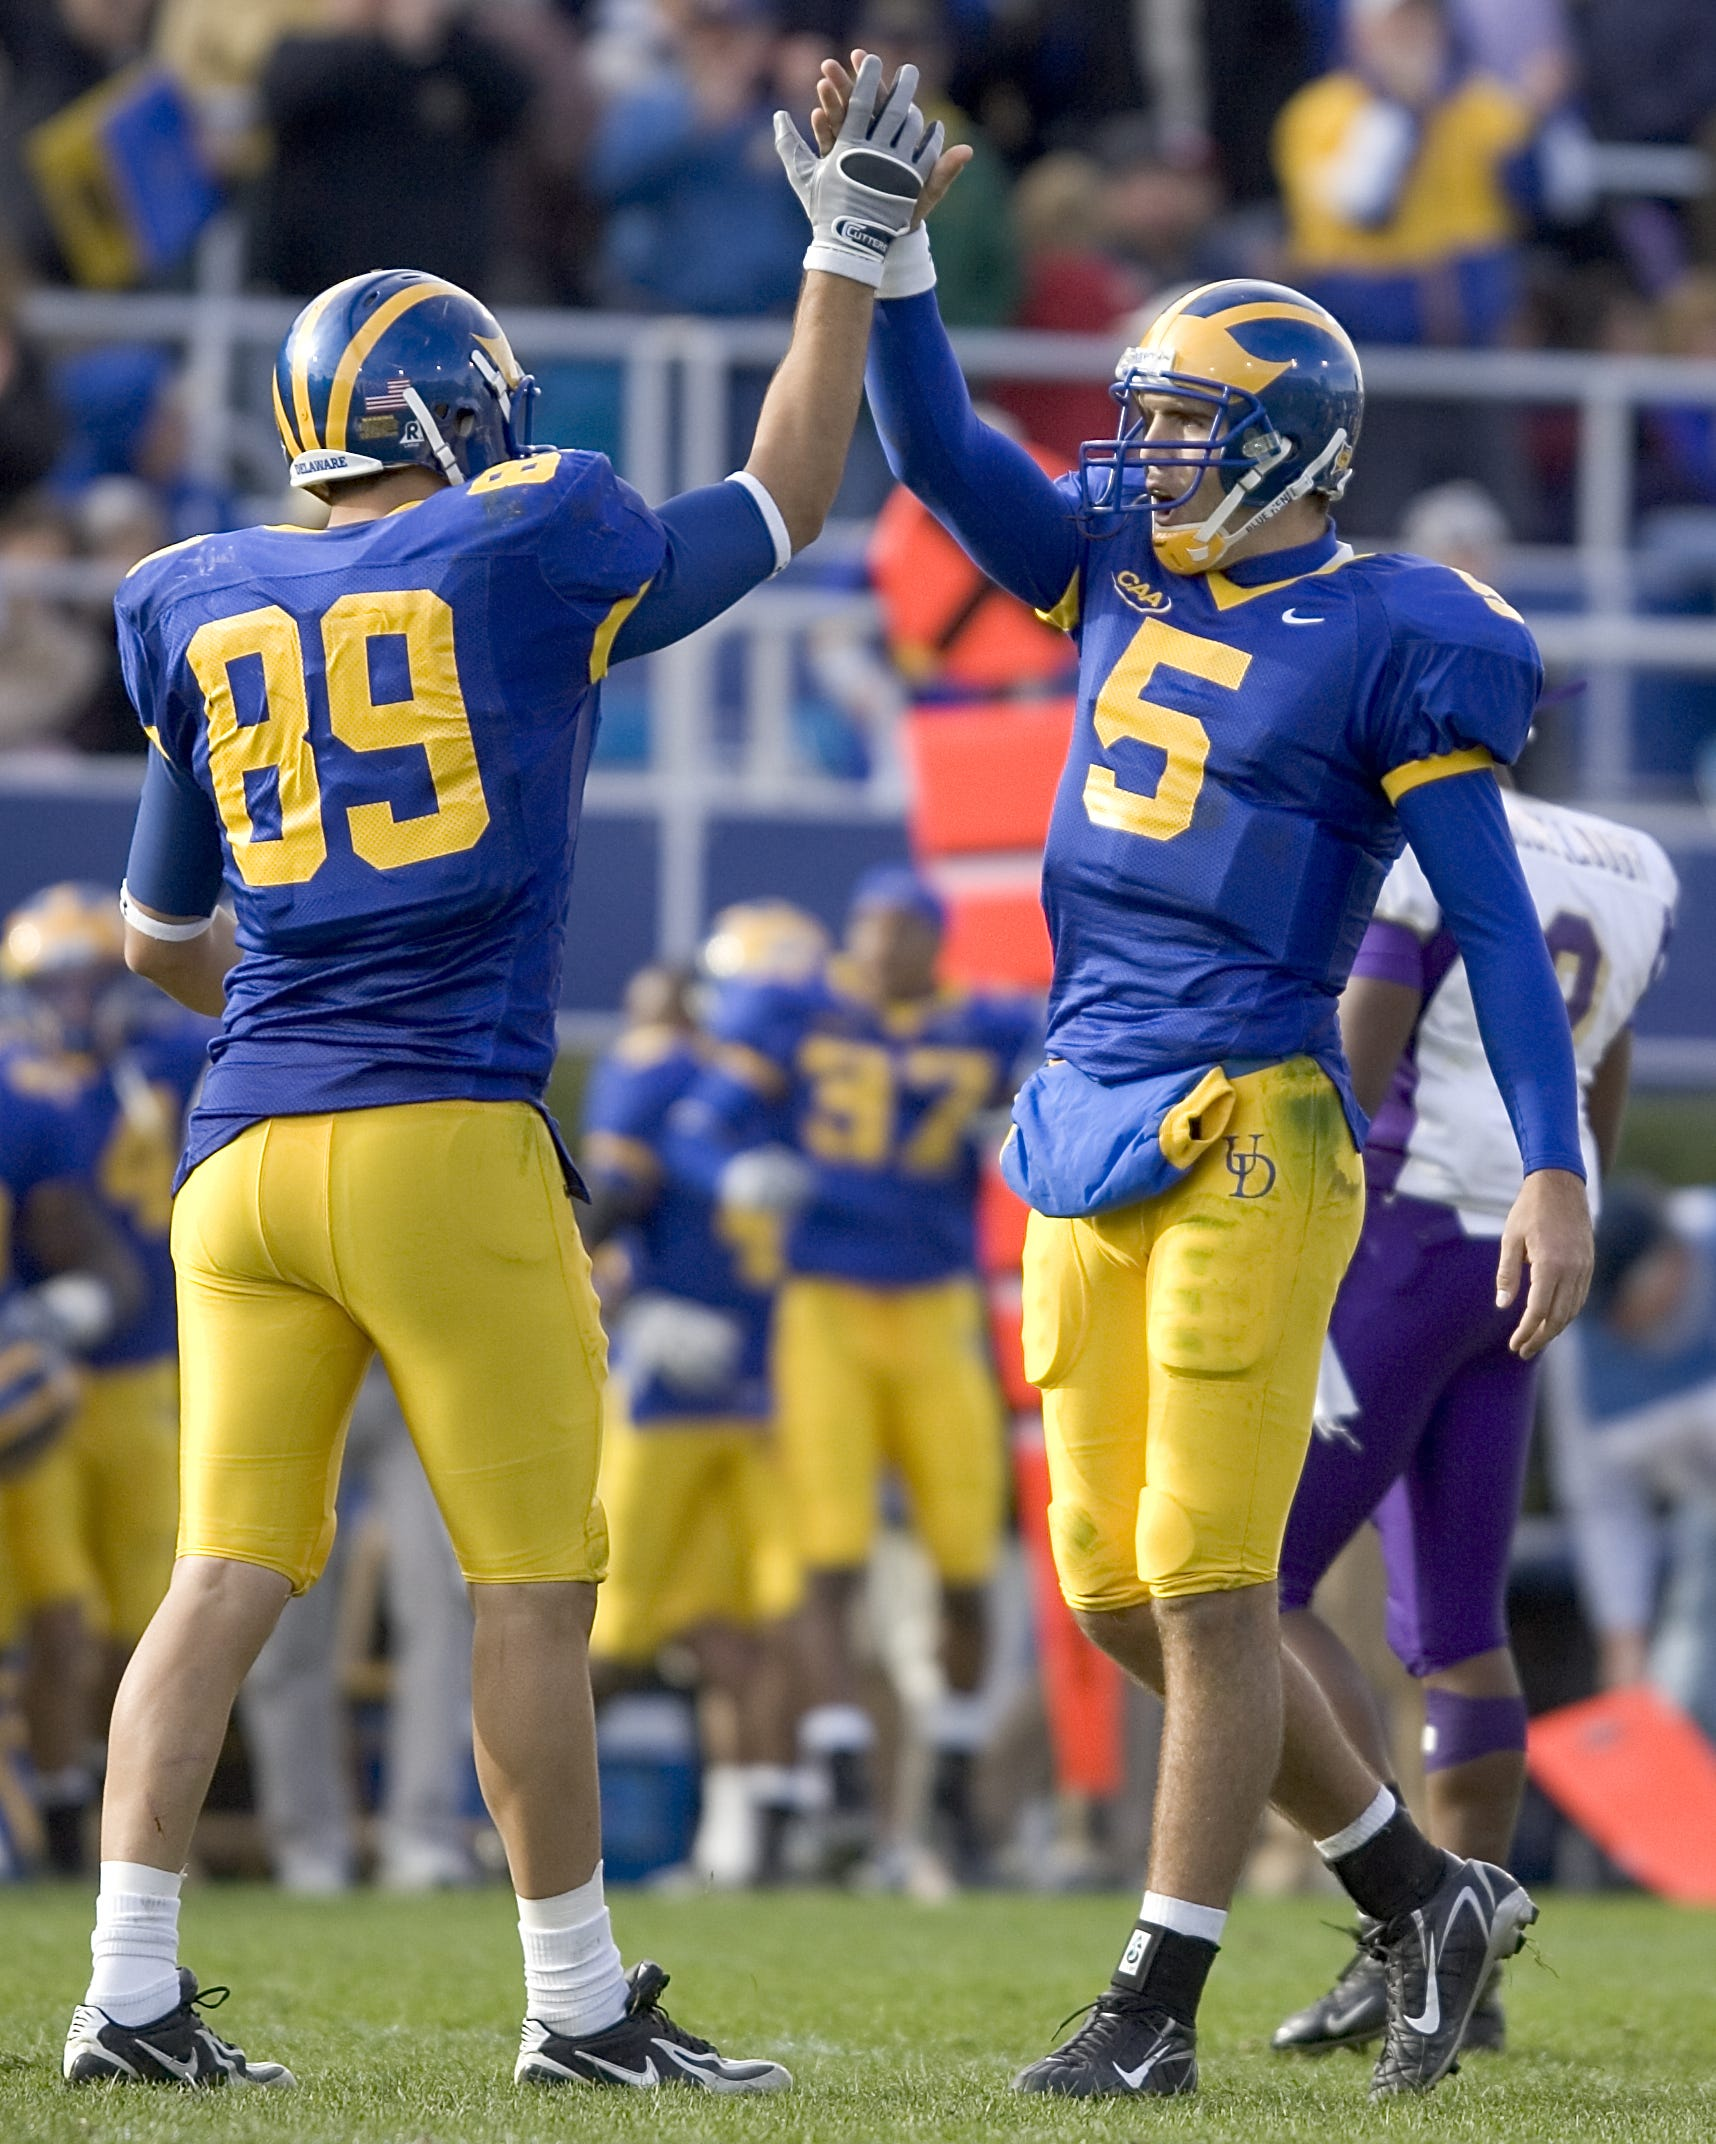 From the archives: Joe Flacco at University of Delaware